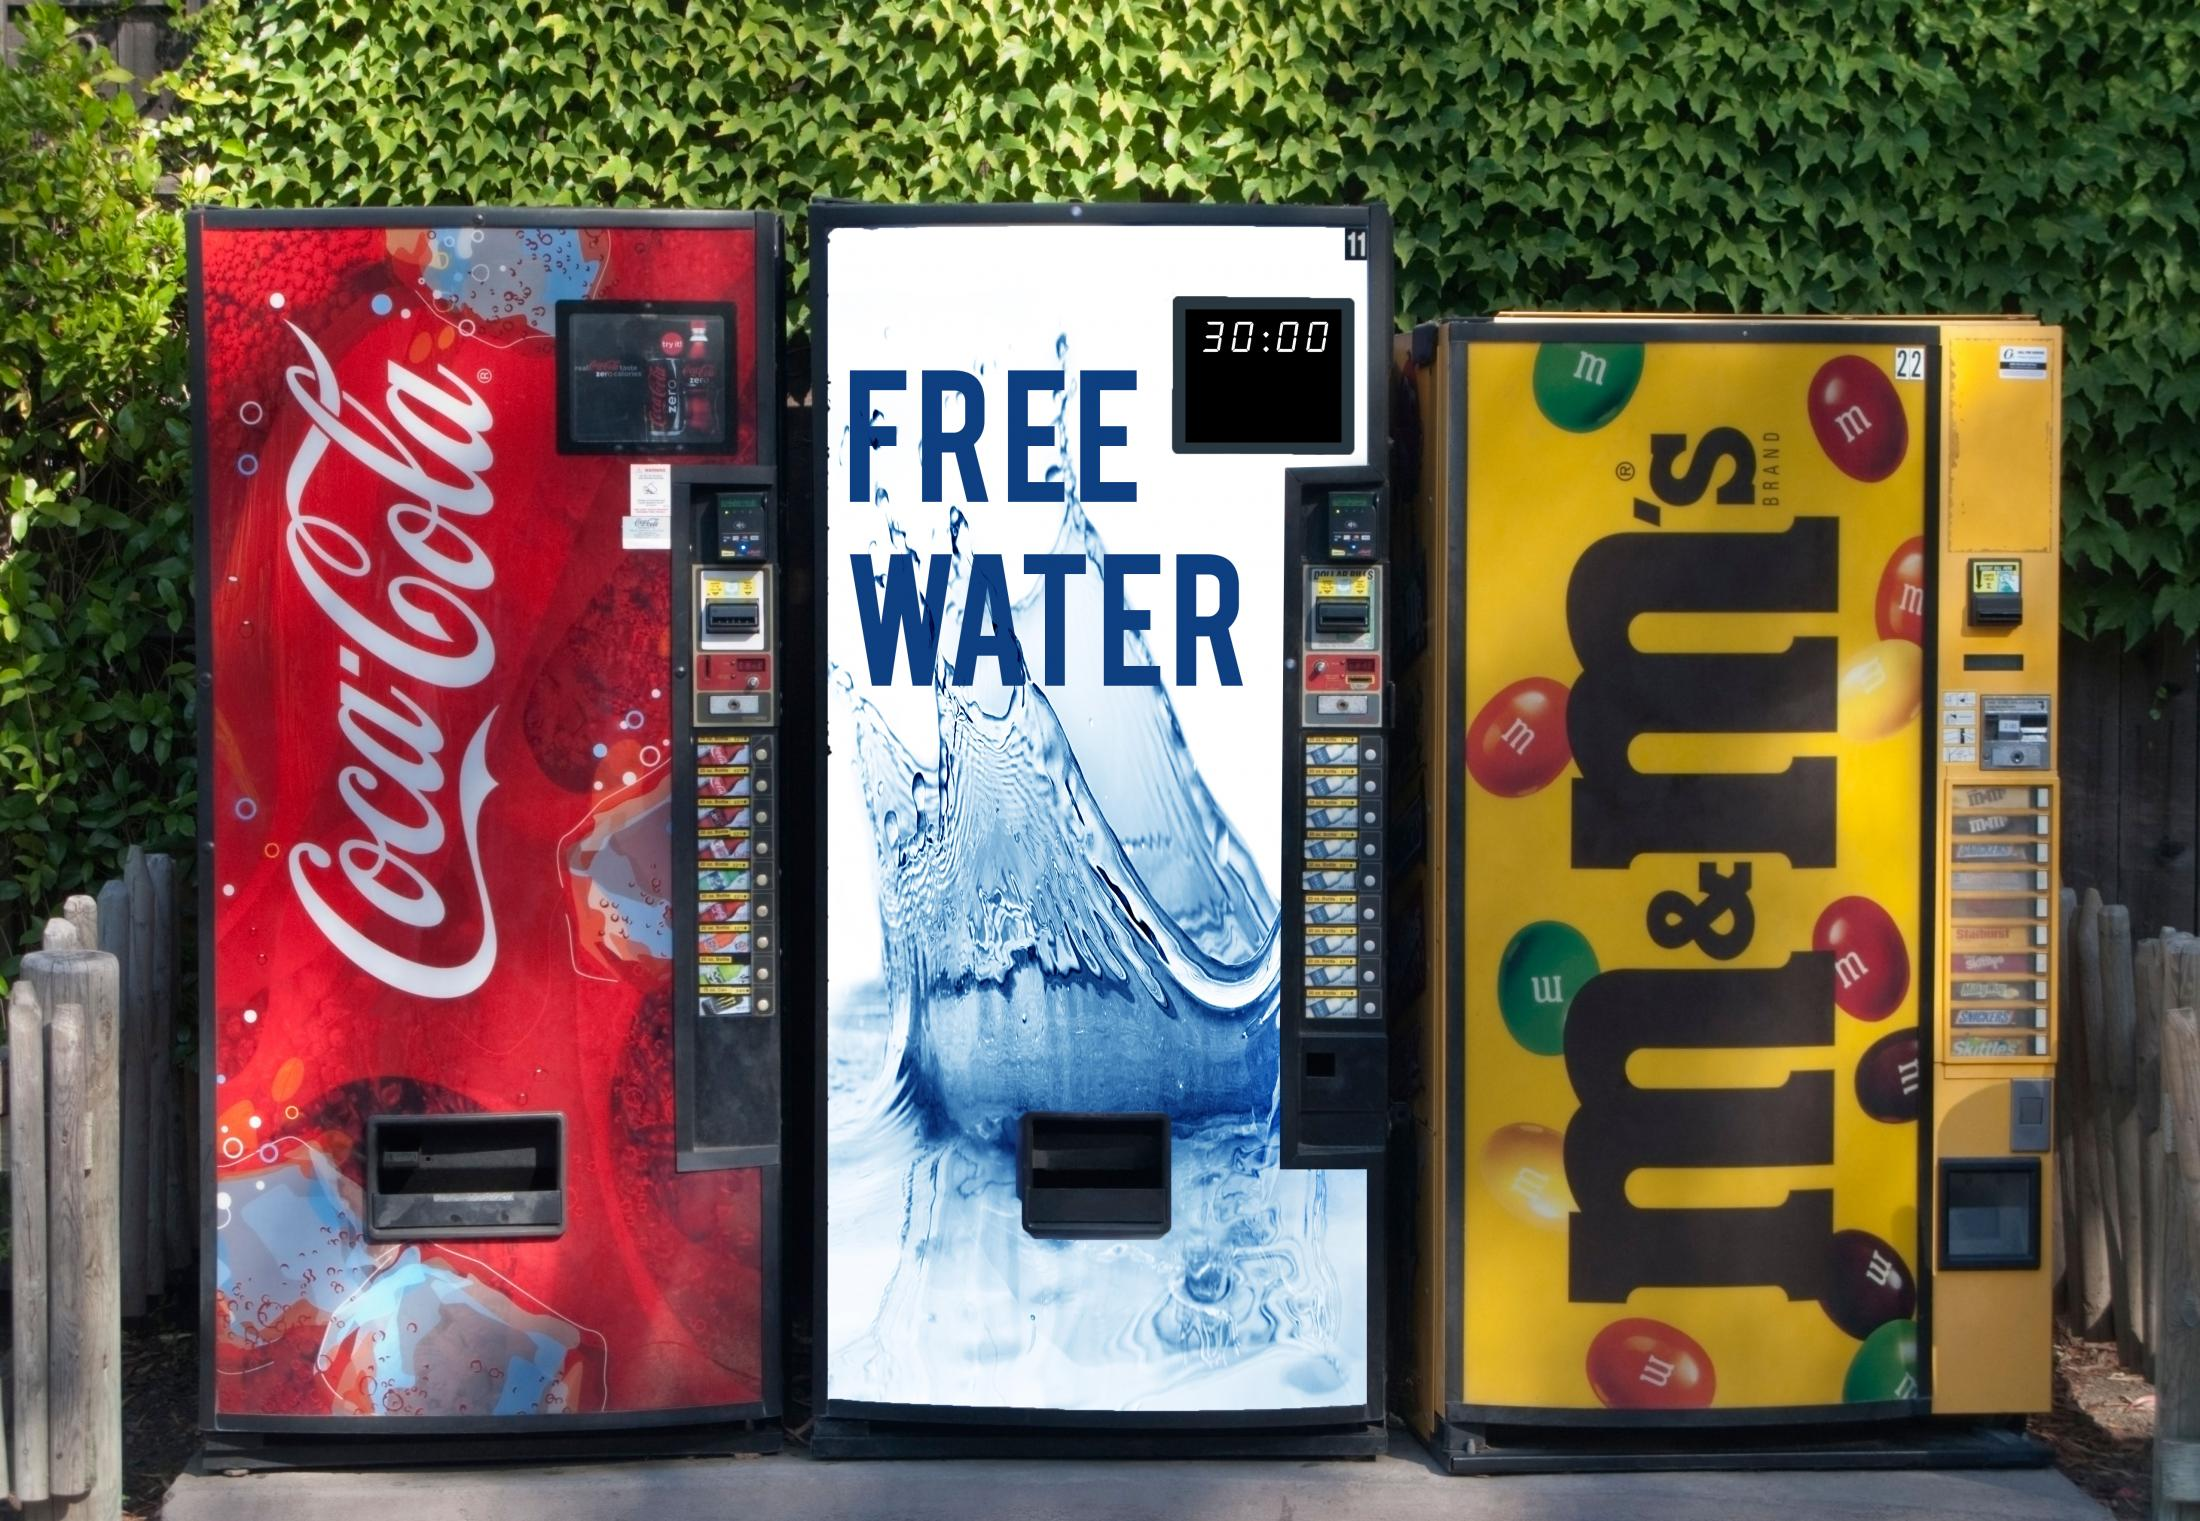 WaterAid Outdoor Ad - 30 Minutes a Day - Vending Machines